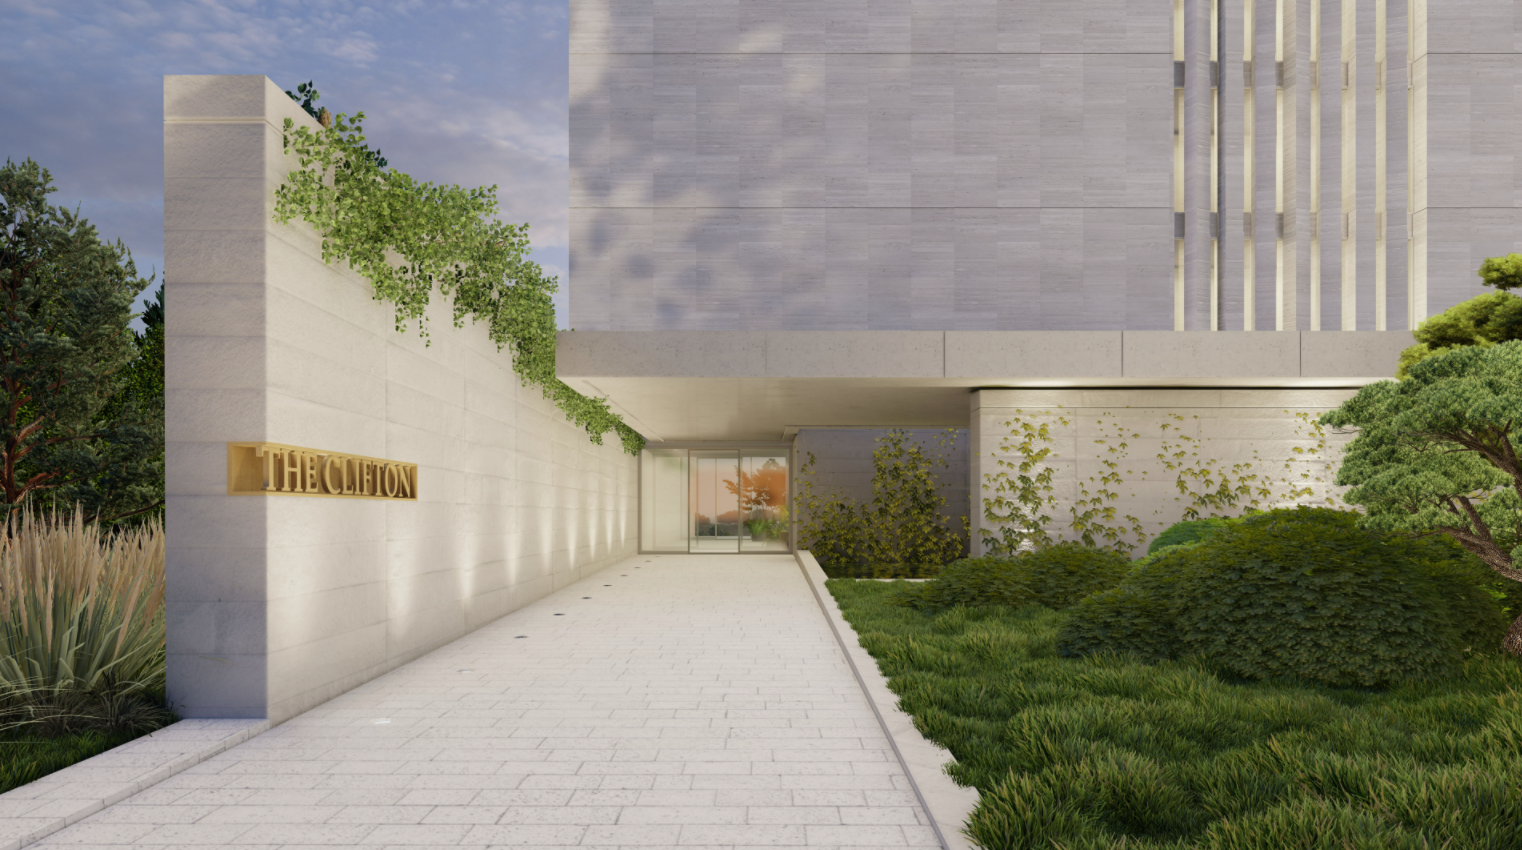 A project rendering of a building entranceway up close, at ground level looking towards the front door with a wall along the left side, leading to the door